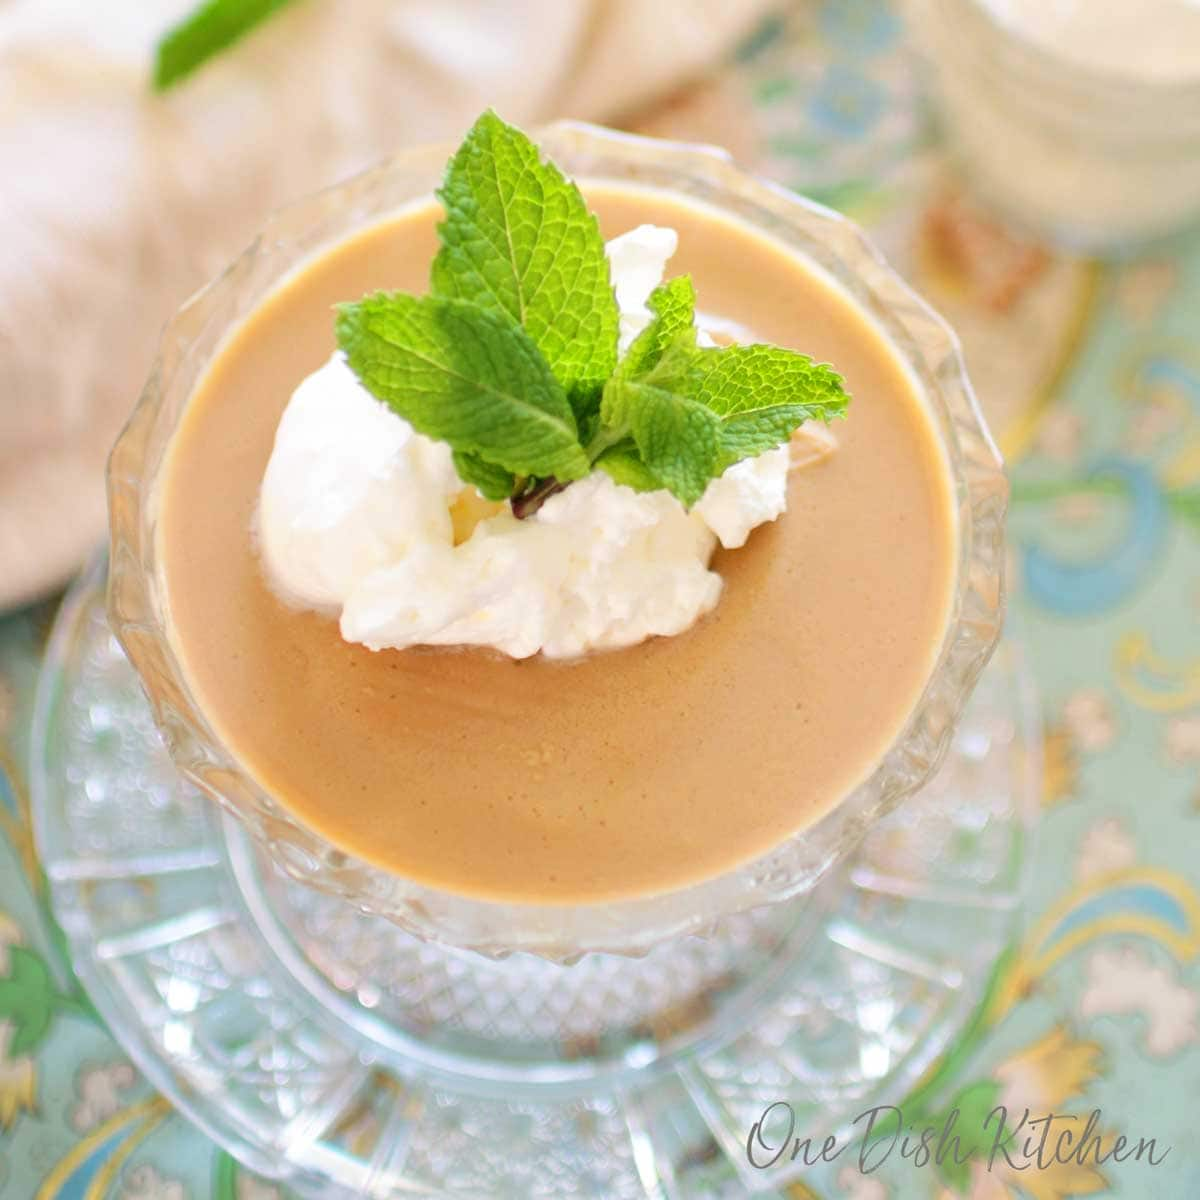 An overhead view of Butterscotch pudding in a dessert glass topped with whipped cream and mint leaves